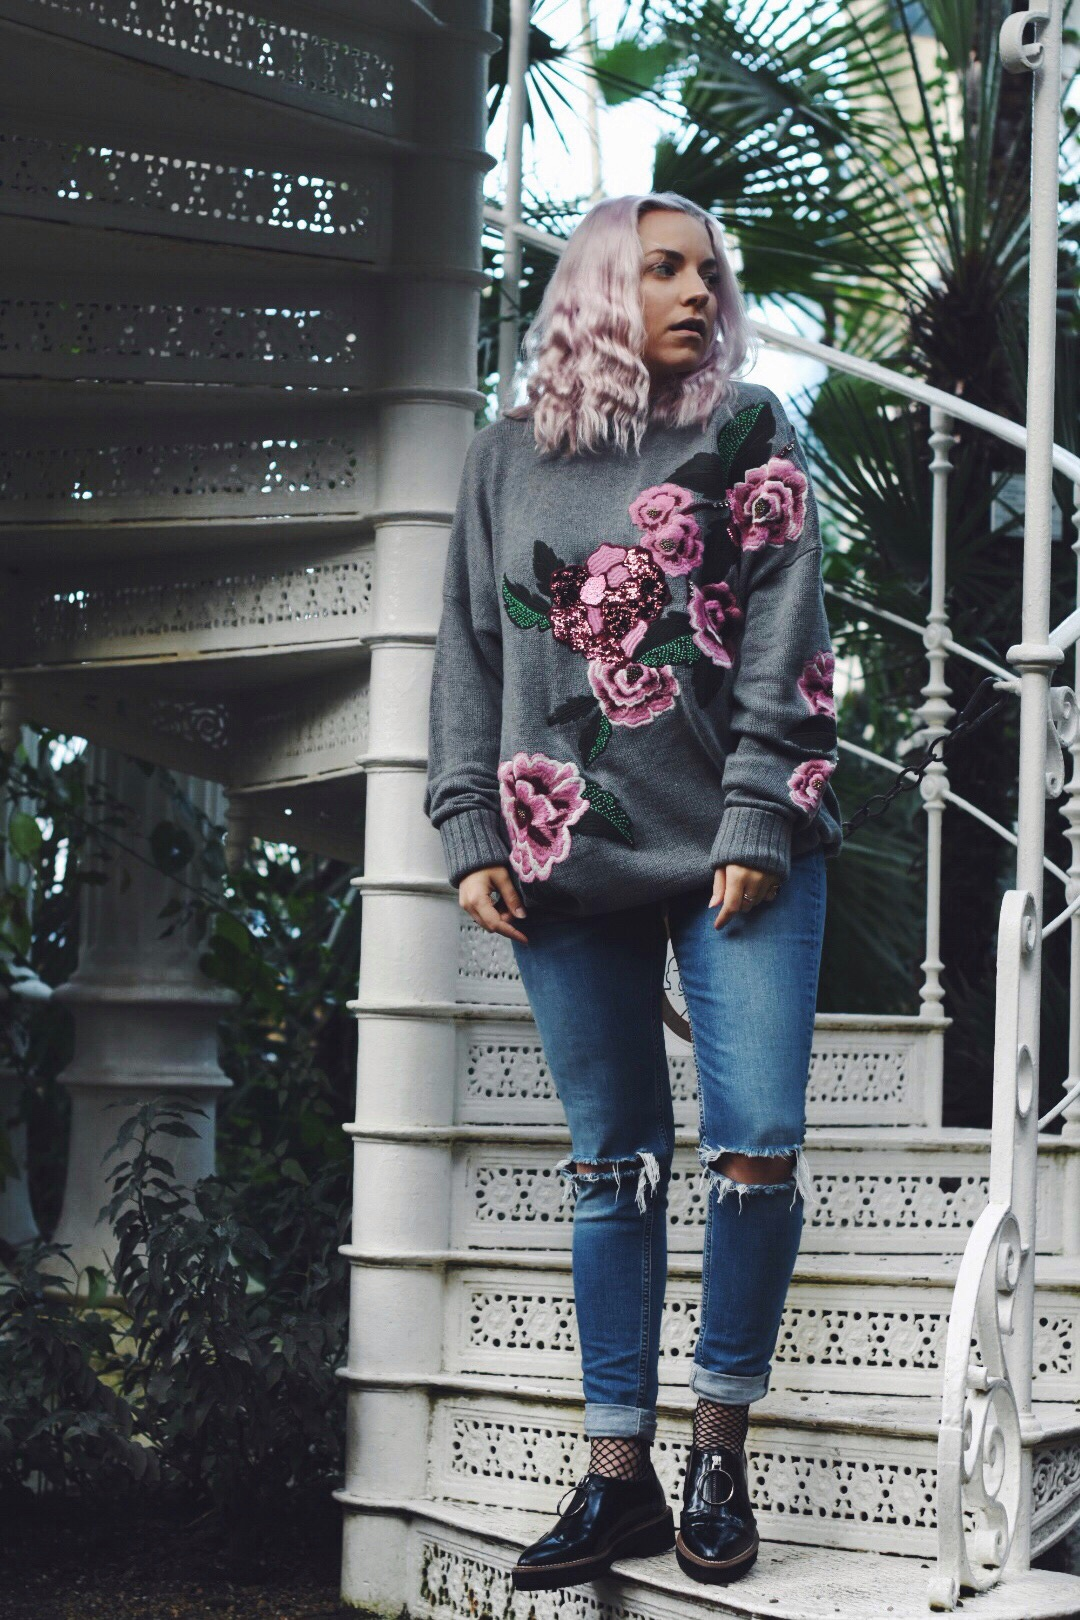 H&M embroidered pink floral knit sweater